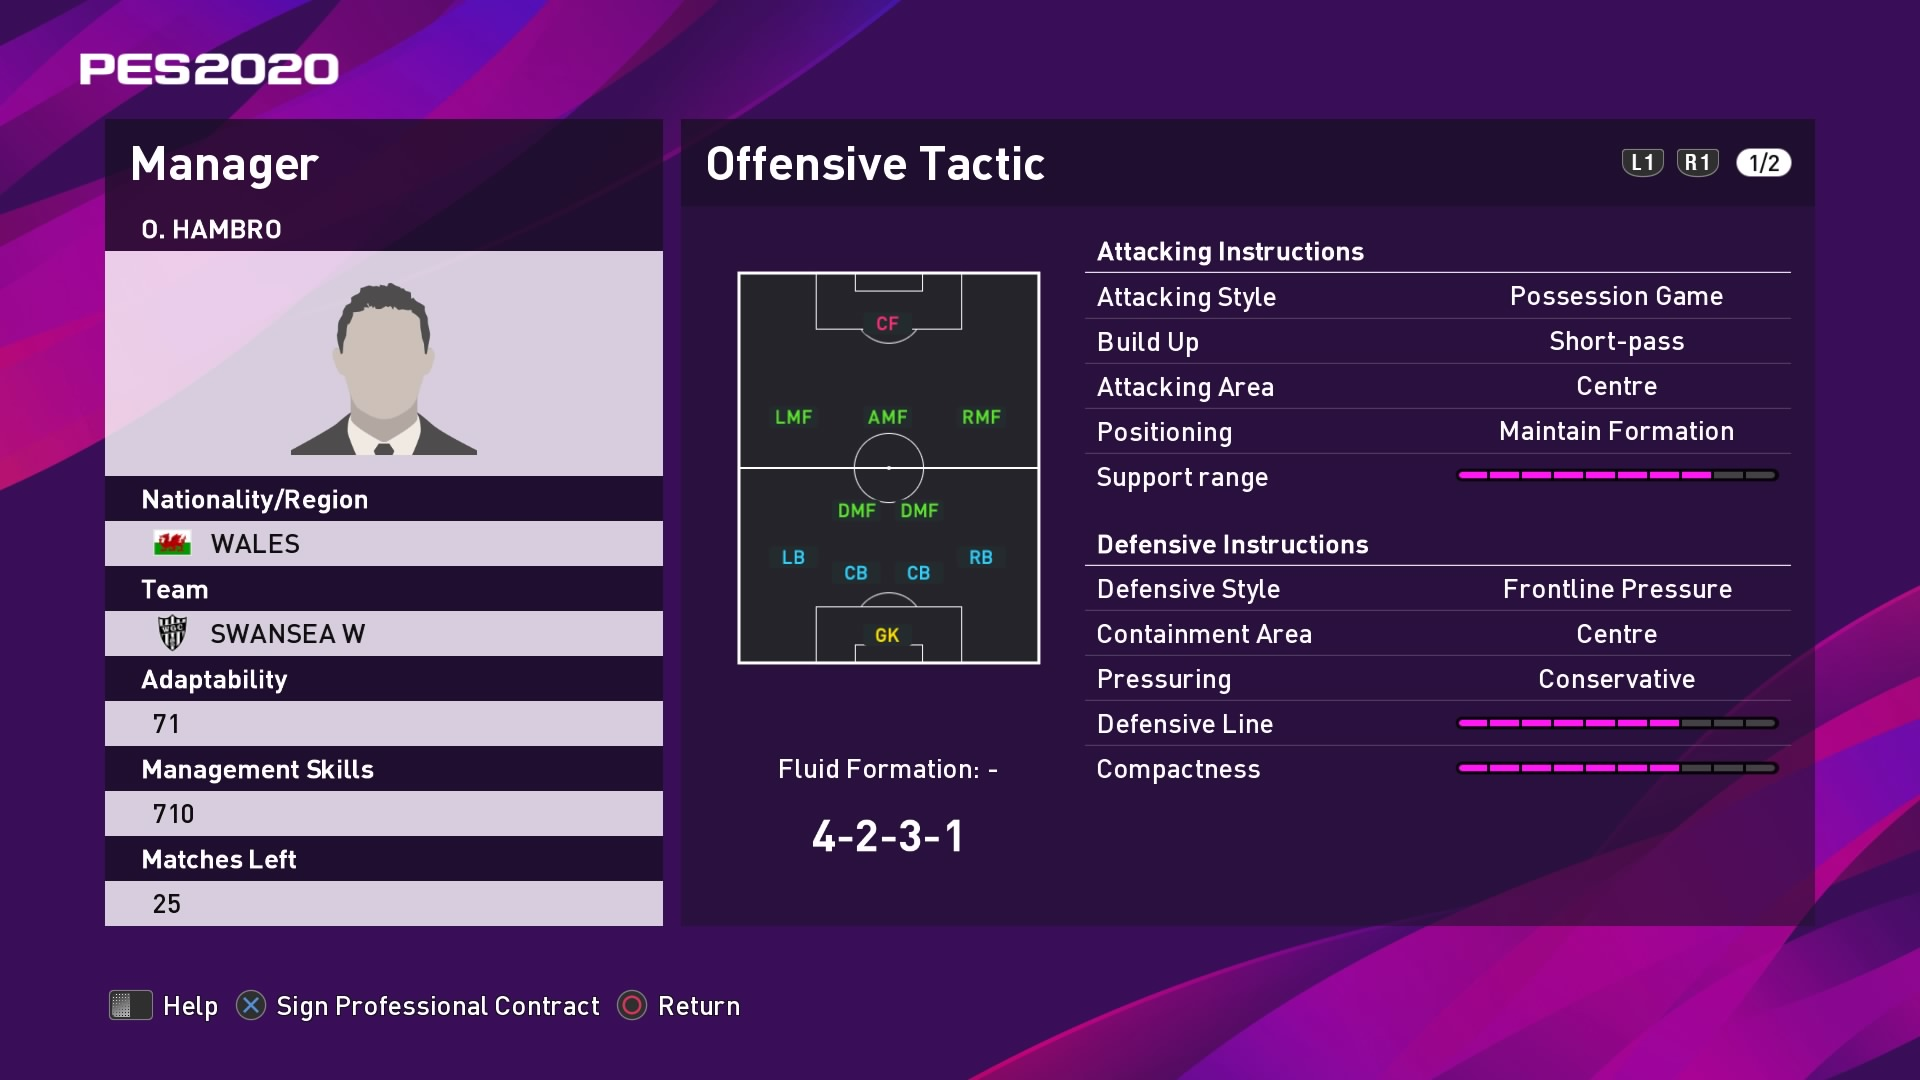 O. Hambro (Steve Cooper) Offensive Tactic in PES 2020 myClub